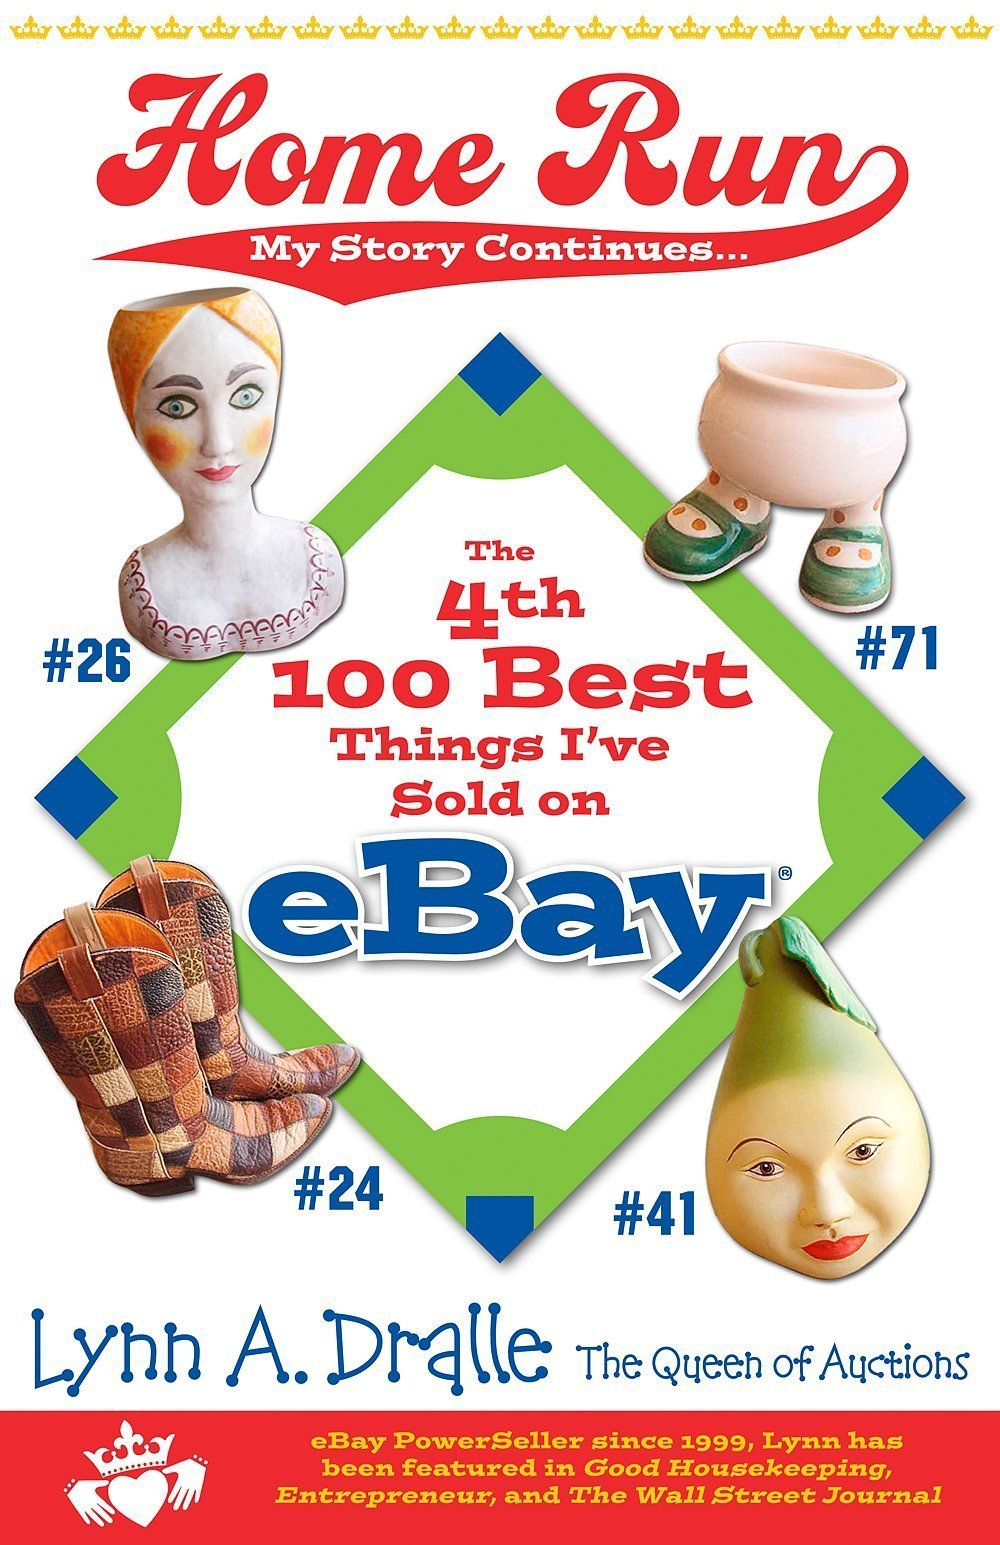 The 4th 100 Best Things I Ve Sold On Ebay Home Run My Story Continues By The Queen Of Auctions The 100 Best Things I Ve Sold On Ebay Dralle Lynn 9780976839323 Amazon Com Books